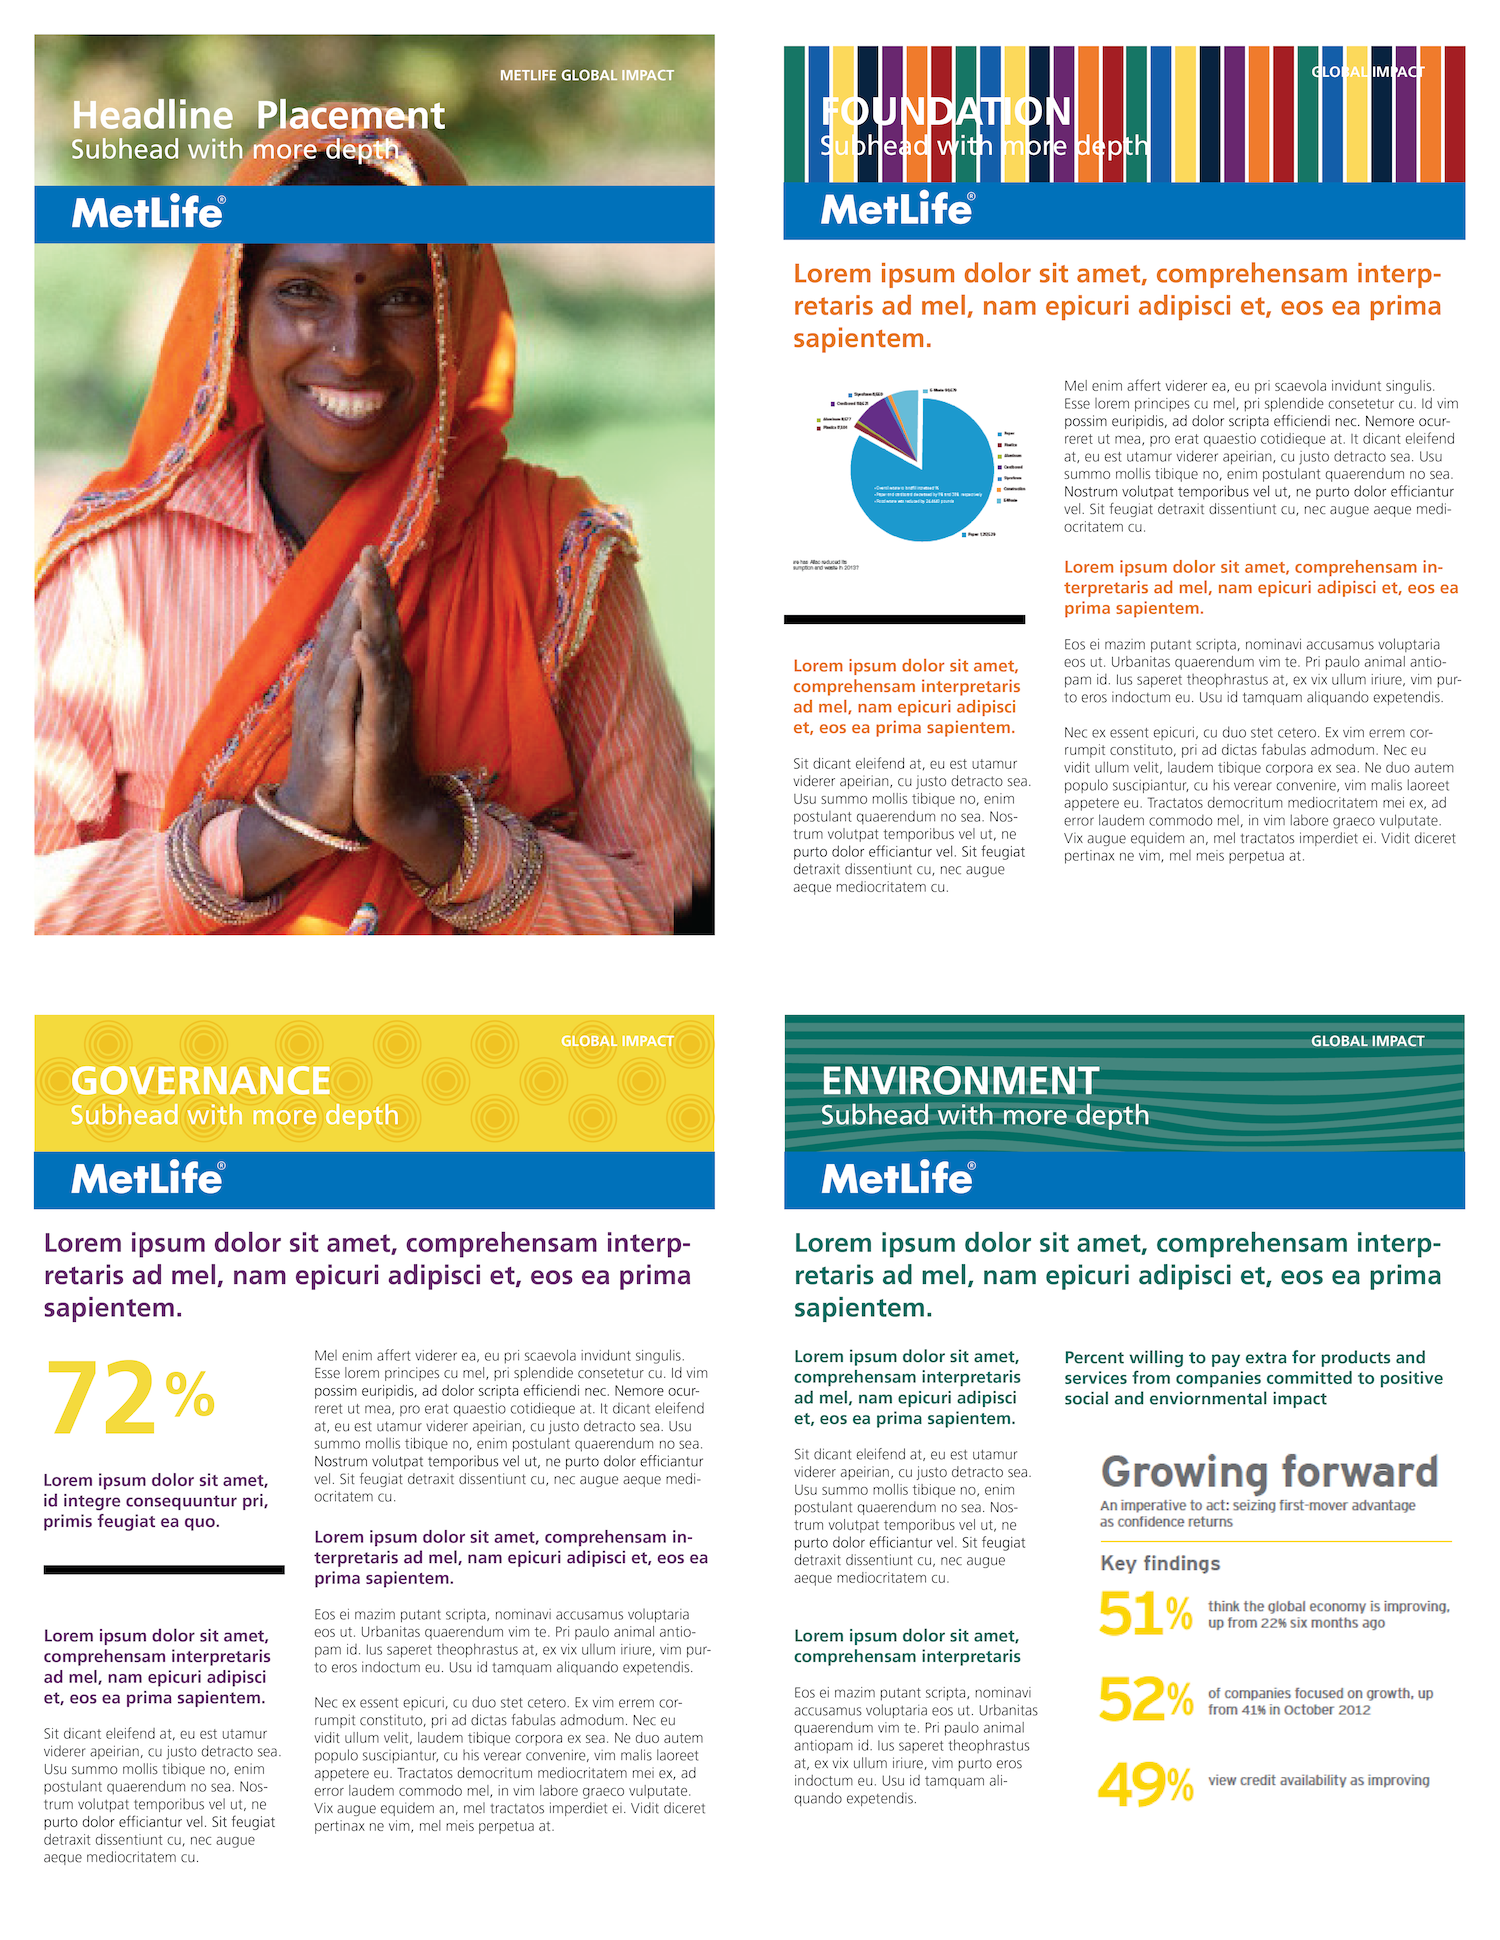 MetLife social impact report layout with images, charts, subsections